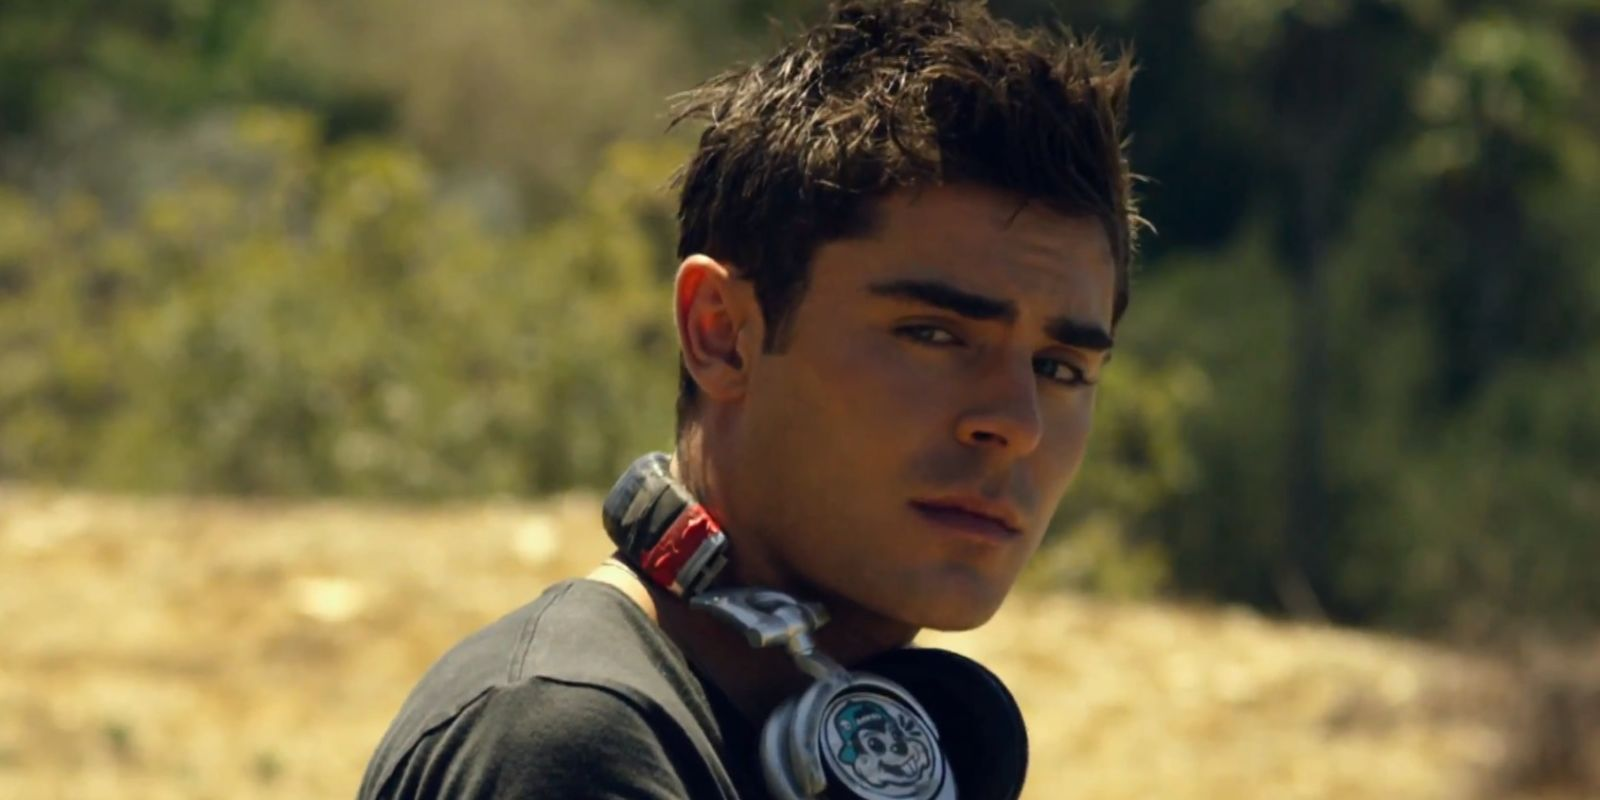 Zac Efron film We Are Your Friends has one of the worst ...